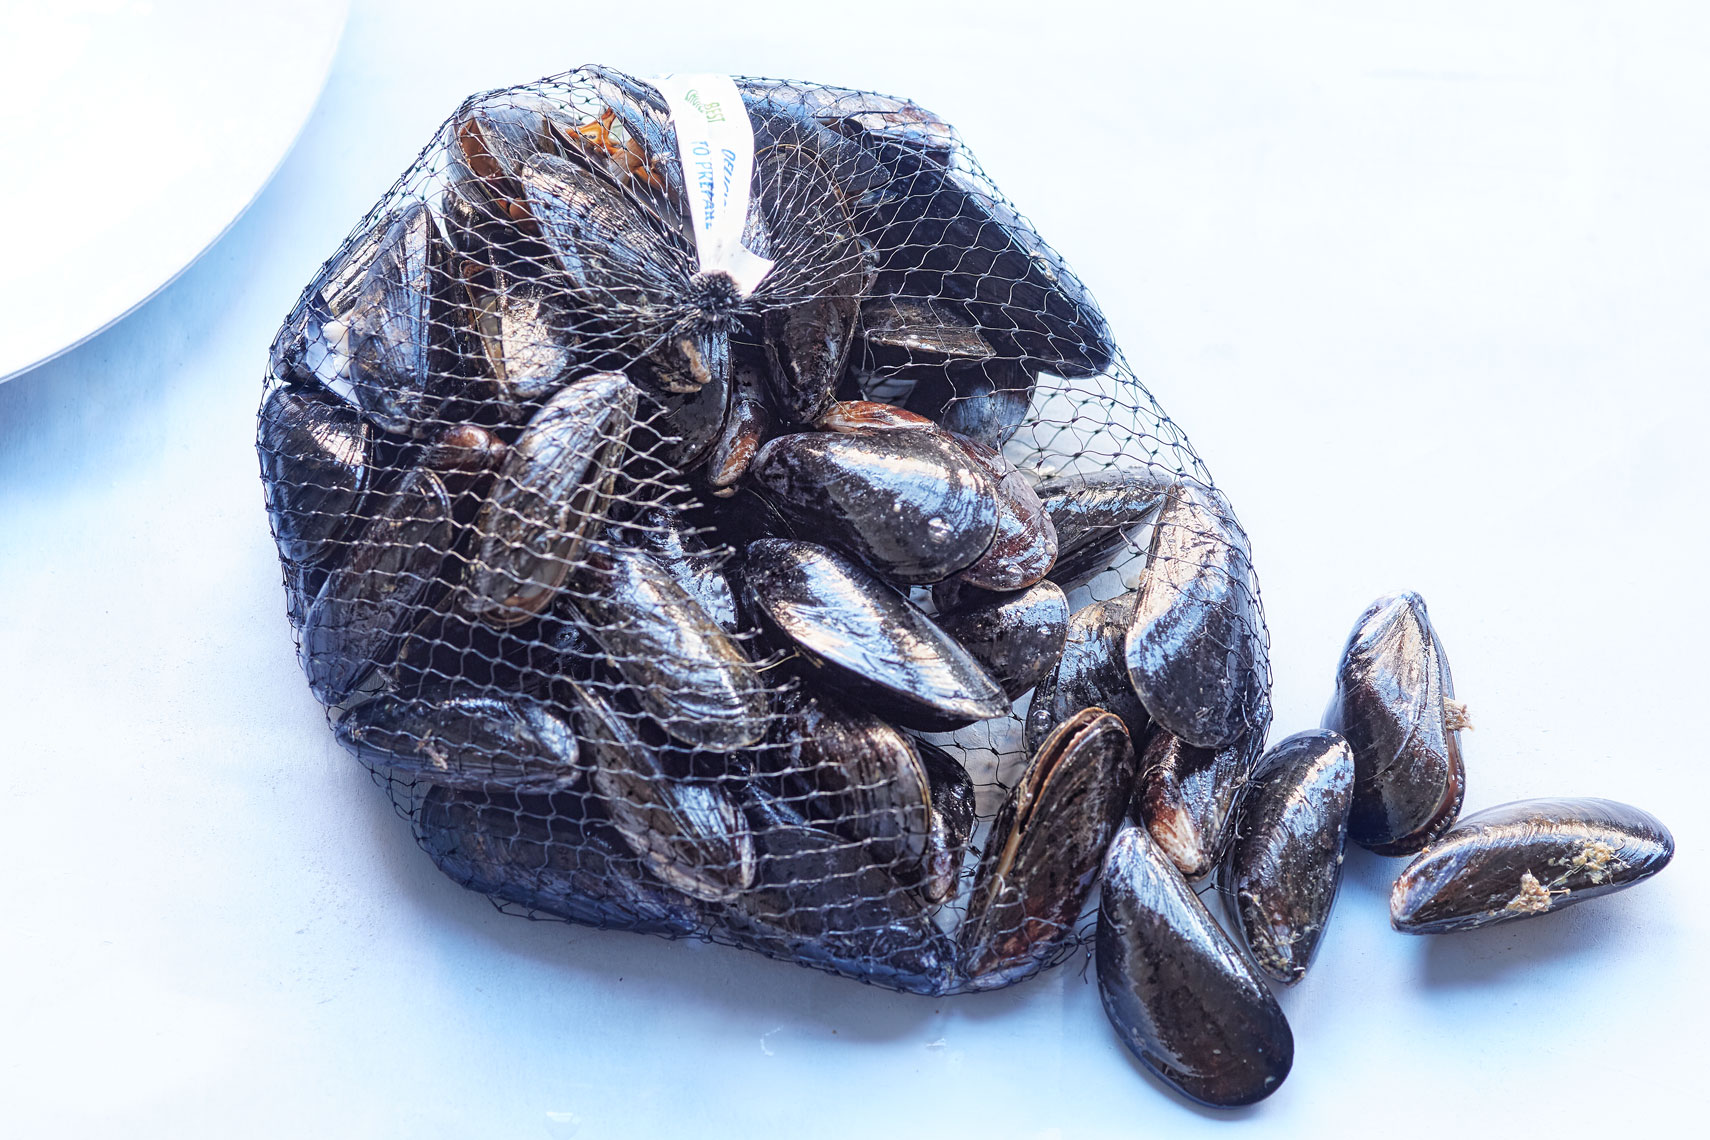 Mussels in Net -Food Photography- © Aristo Studios